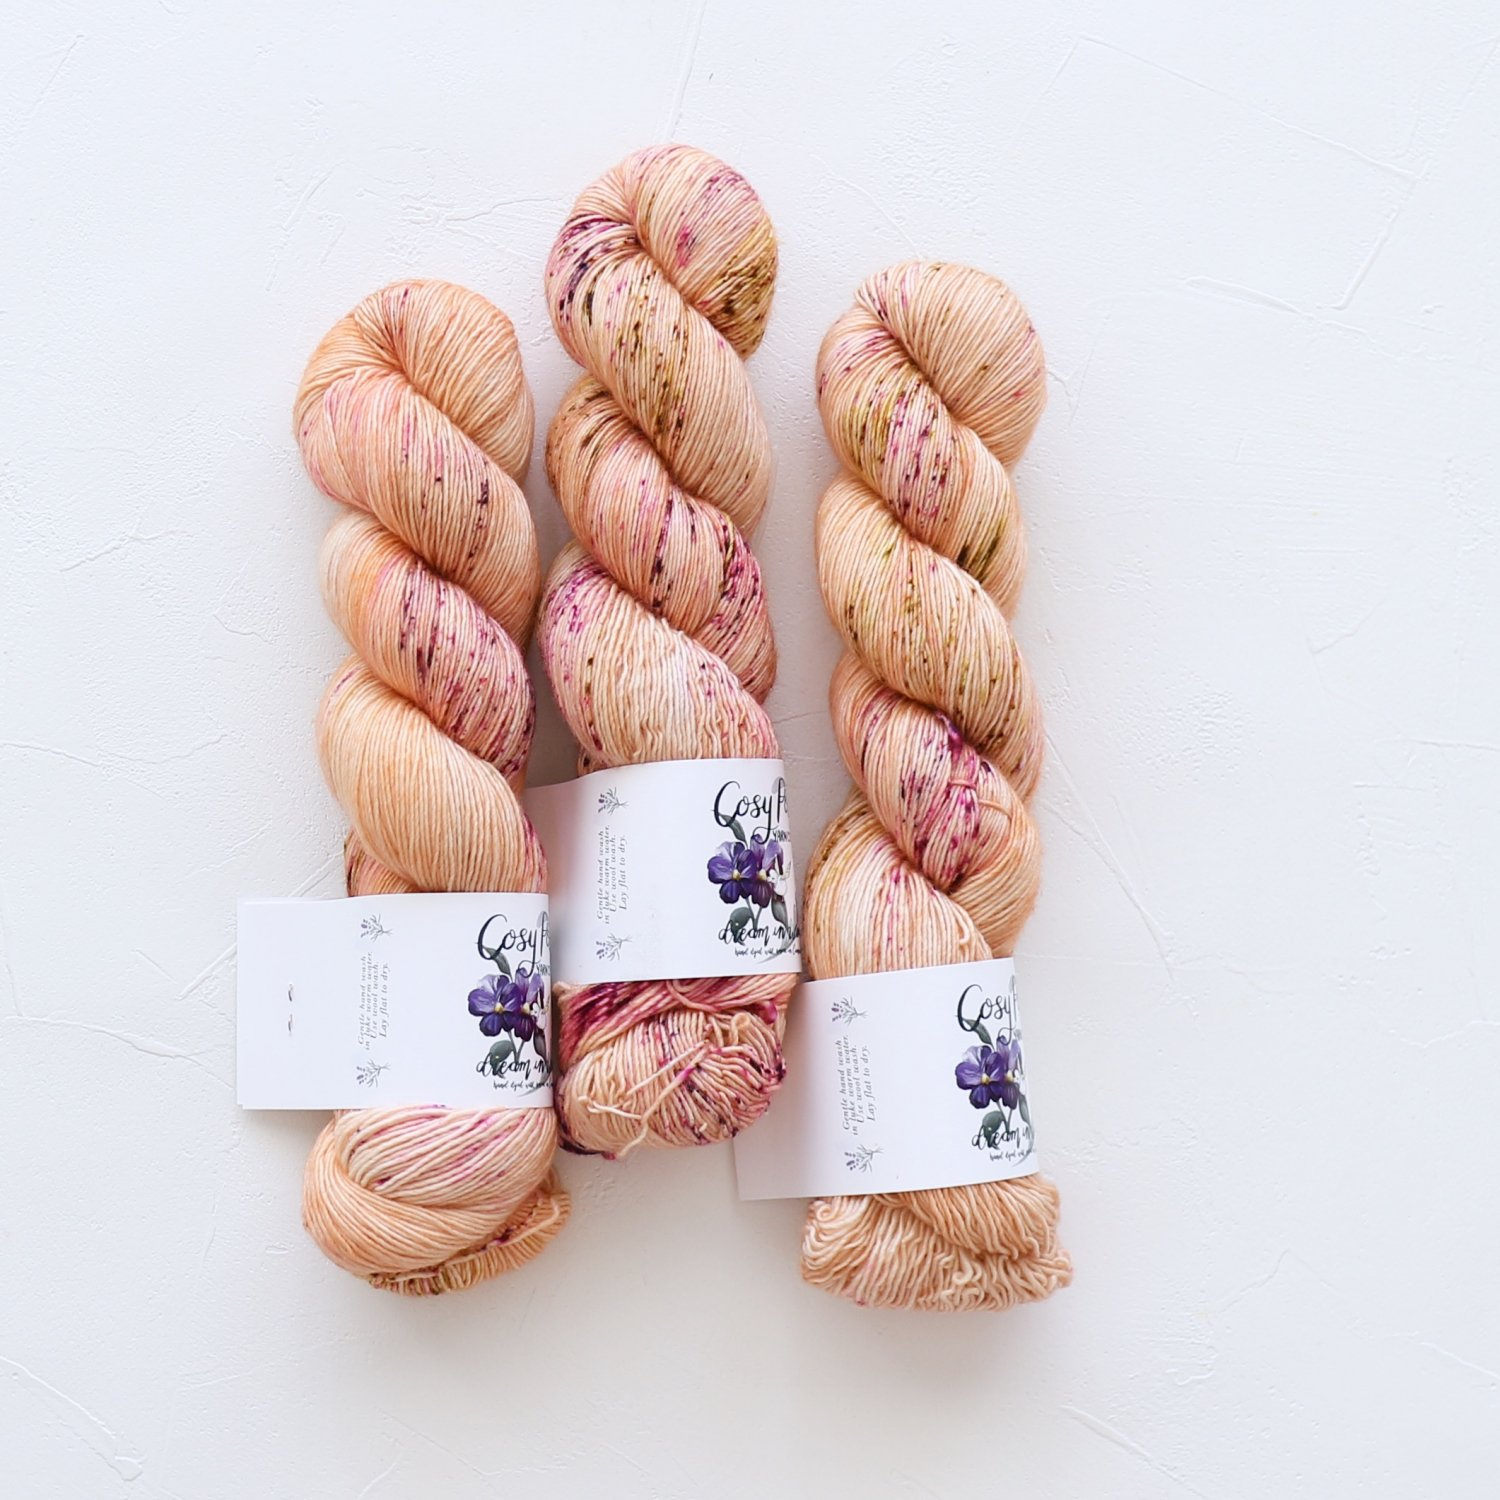 【Cosy Posy Yarn】<br>CLOUD<br>Secret Heart